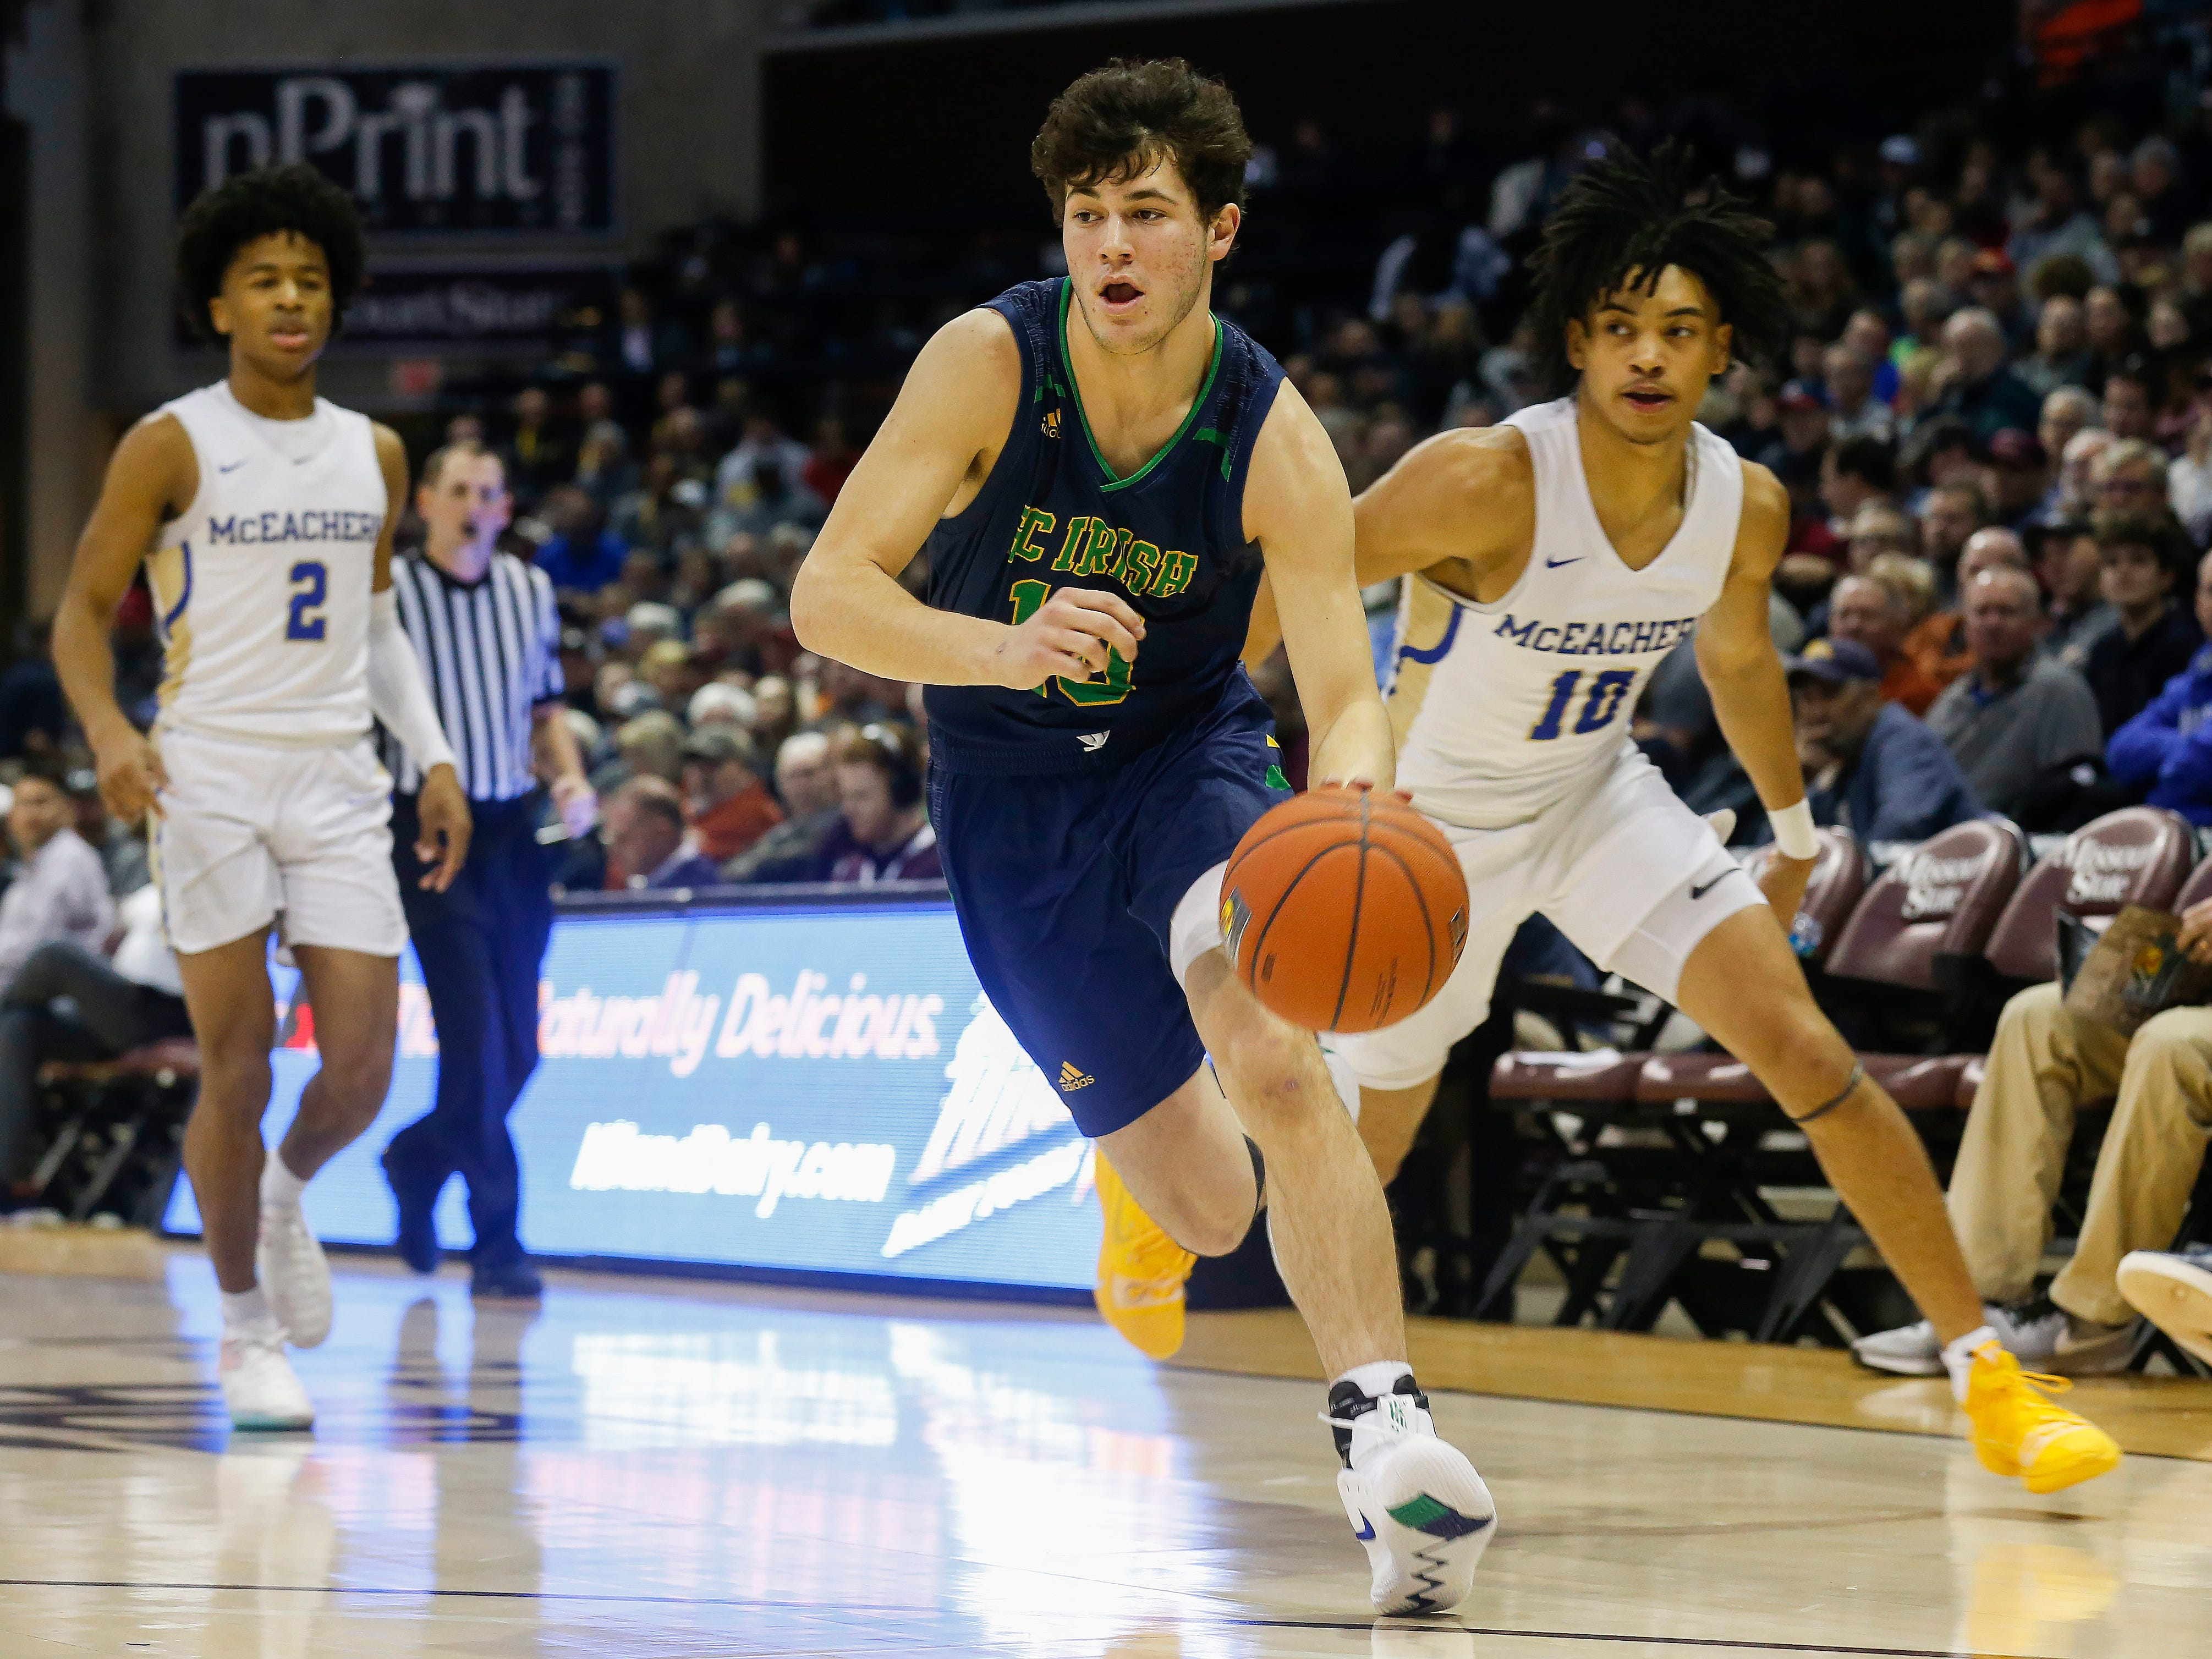 Mike Manzardo, of Springfield Catholic, brings the ball down the court during the Irish's  game against McEachern at the Bass Pro Shops Tournament of Champions at JQH Arena on Thursday, Jan. 17, 2019.